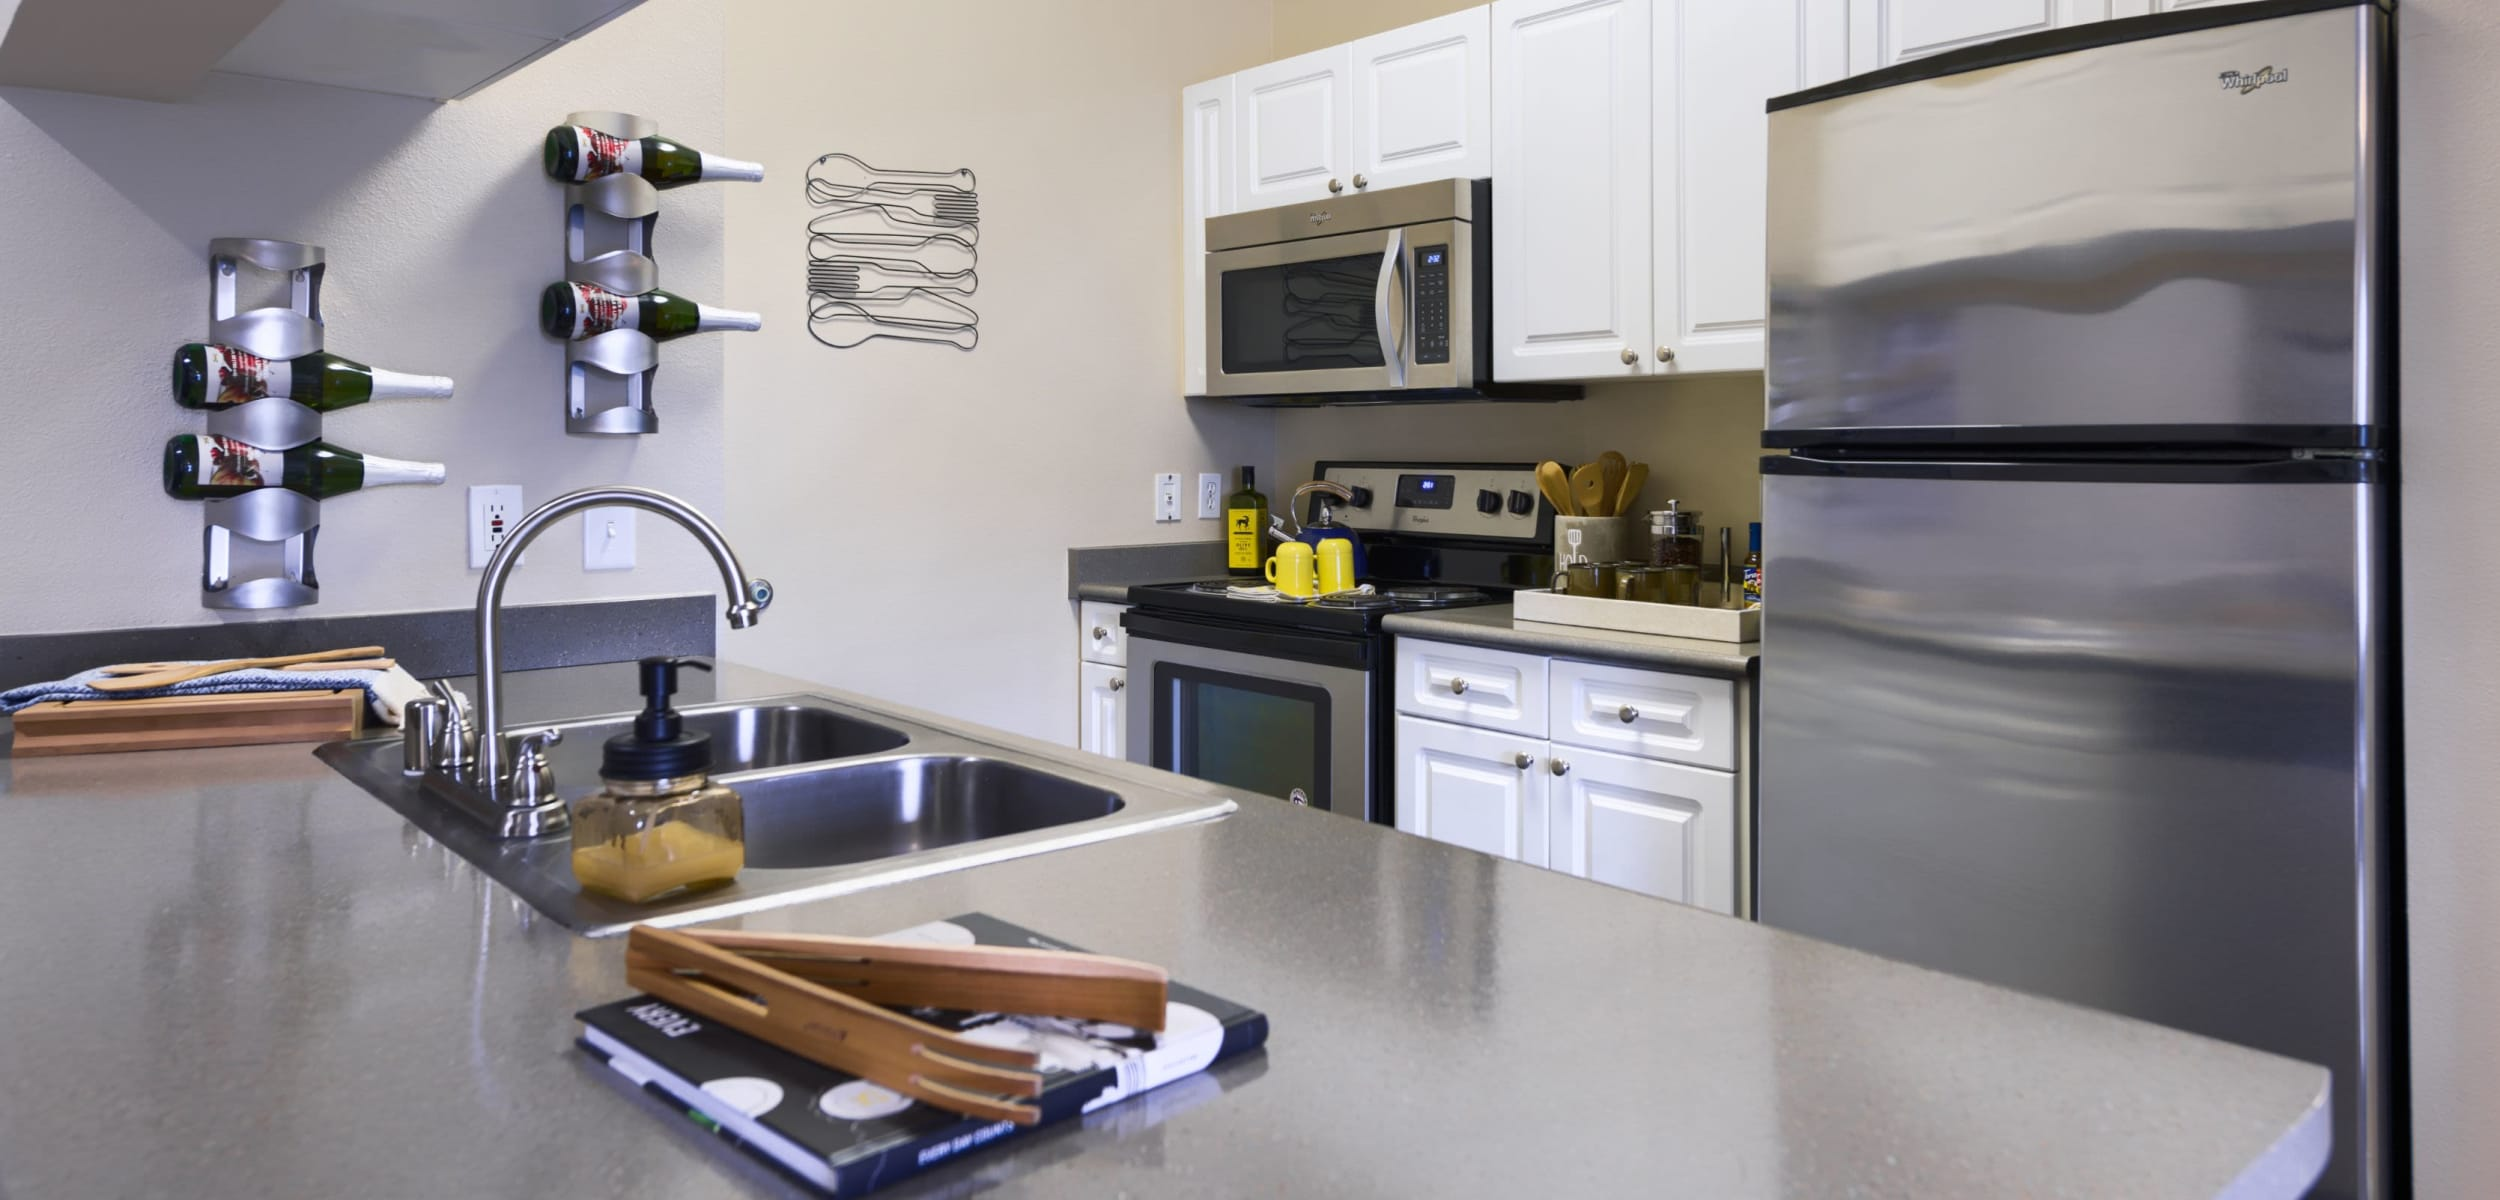 Kitchen with modern appliances at Whisper Creek Apartment Homes in Lakewood, Colorado